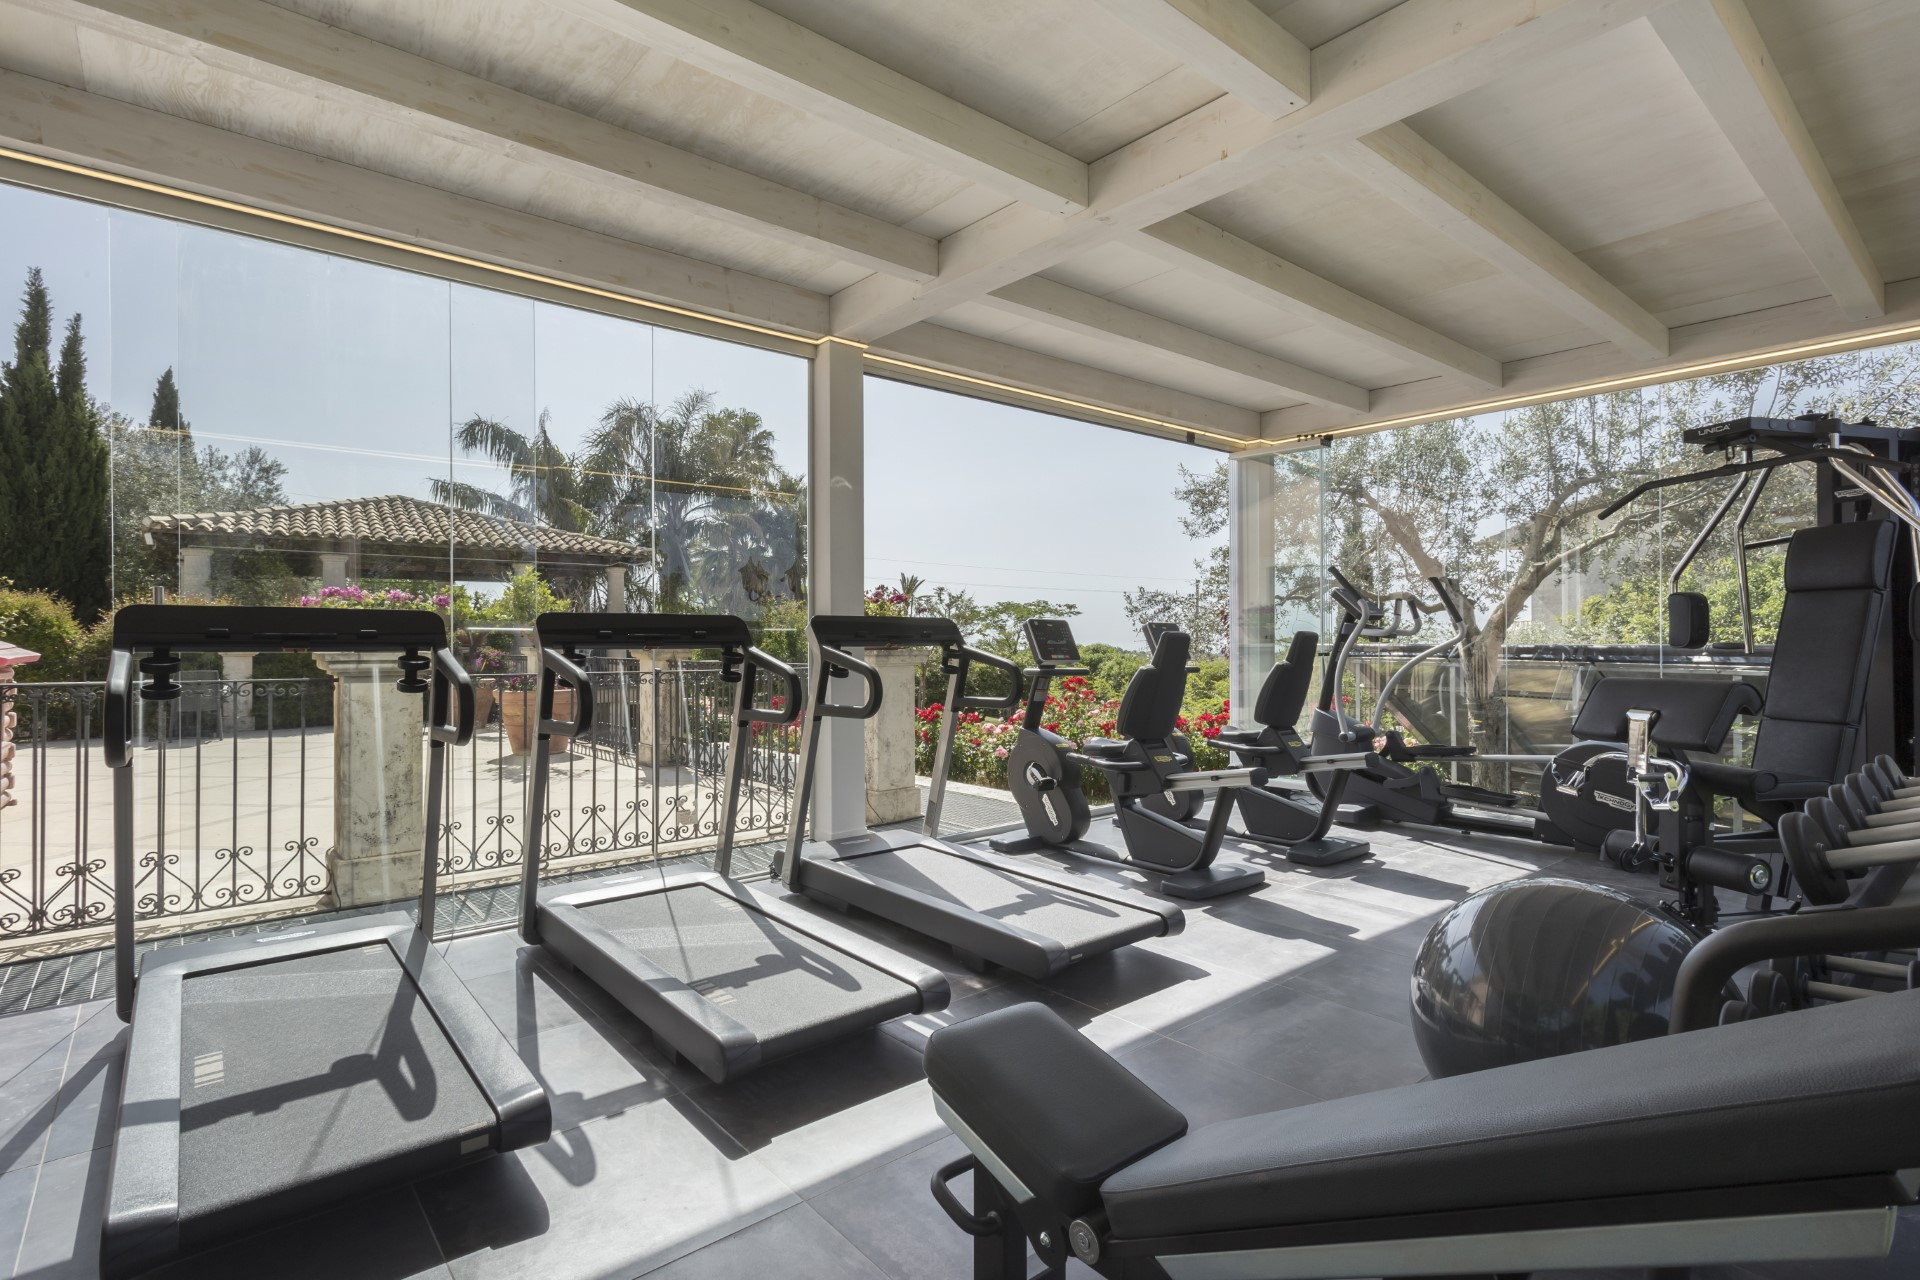 Open Gym | Agriturismo & SPA Il Granaio | Resort a Modica